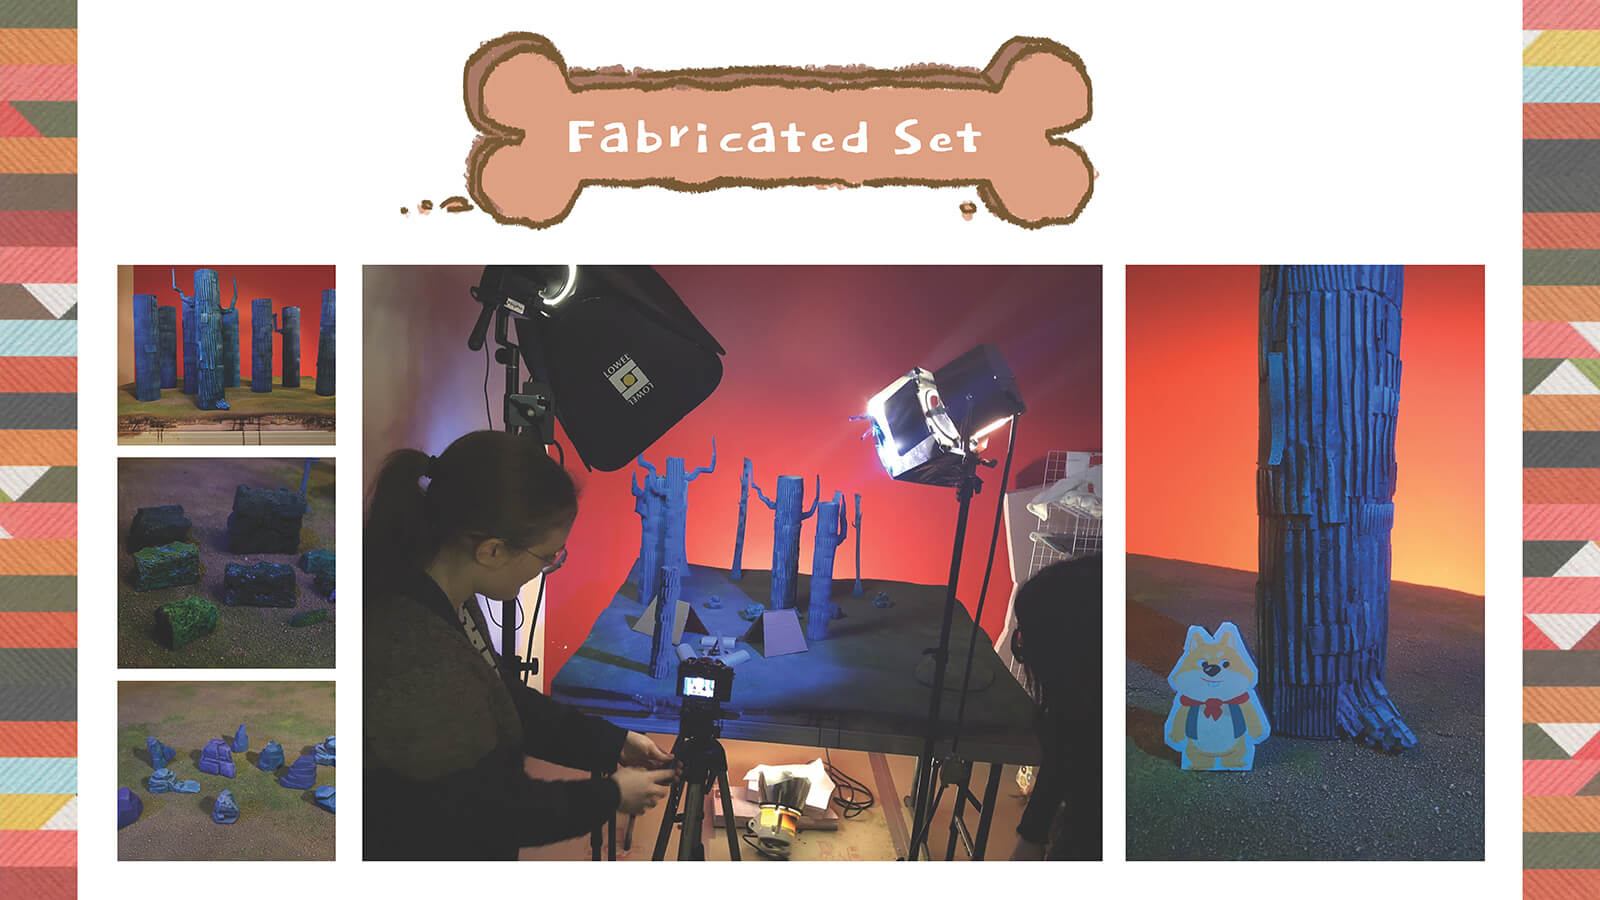 Photos of the practical, fabricated set for the animated film PrePAWsterous.